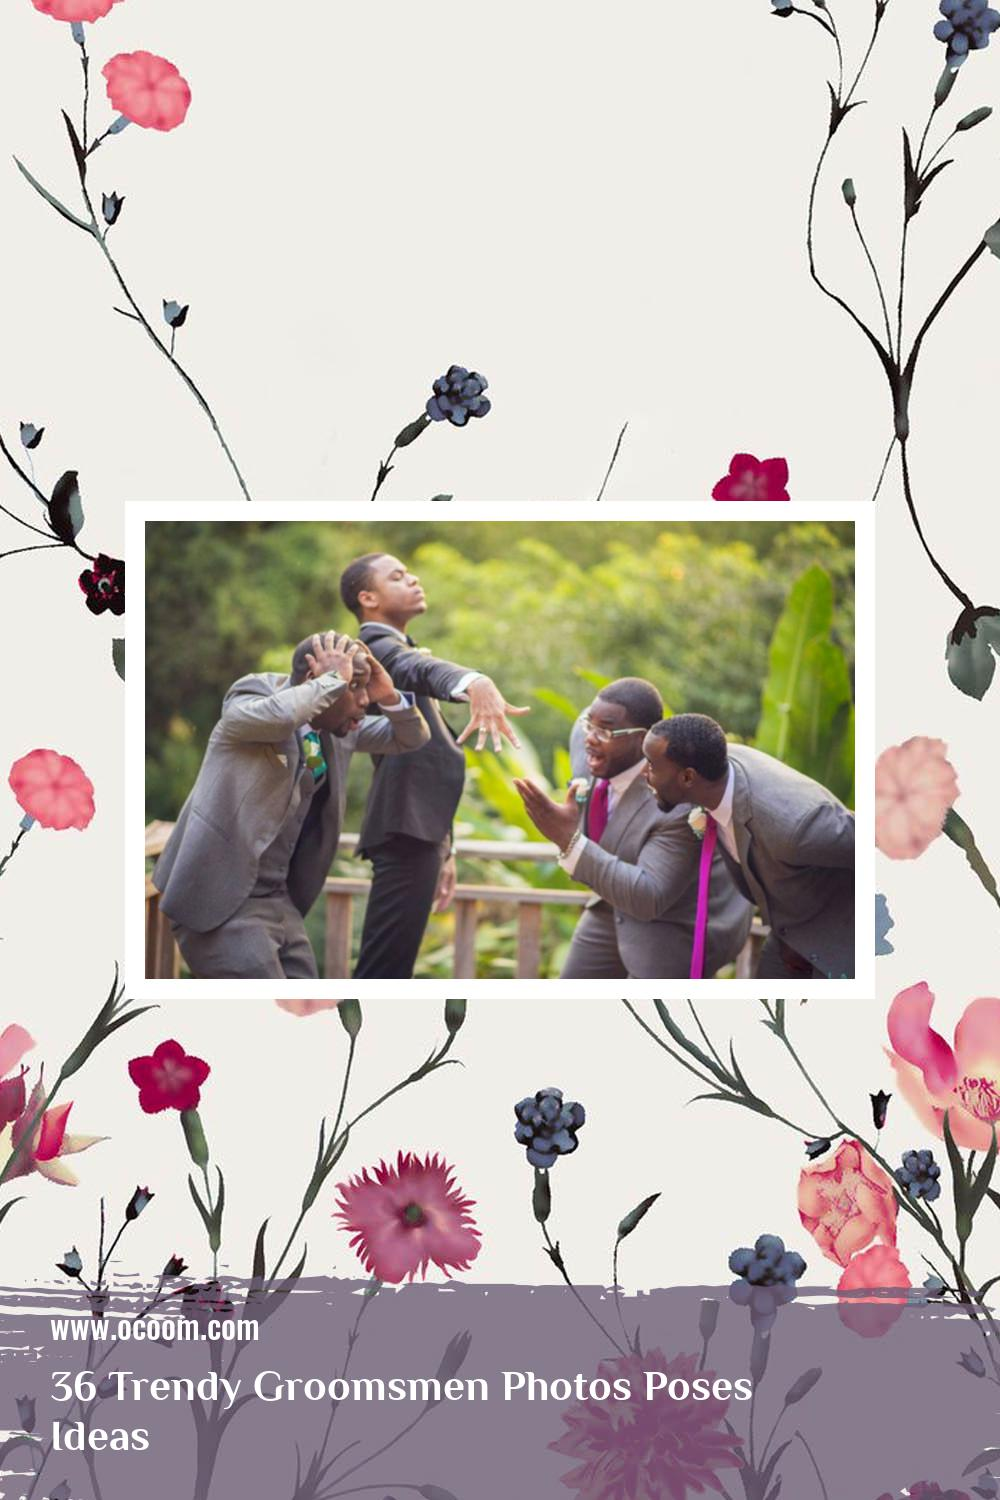 36 Trendy Groomsmen Photos Poses Ideas 29